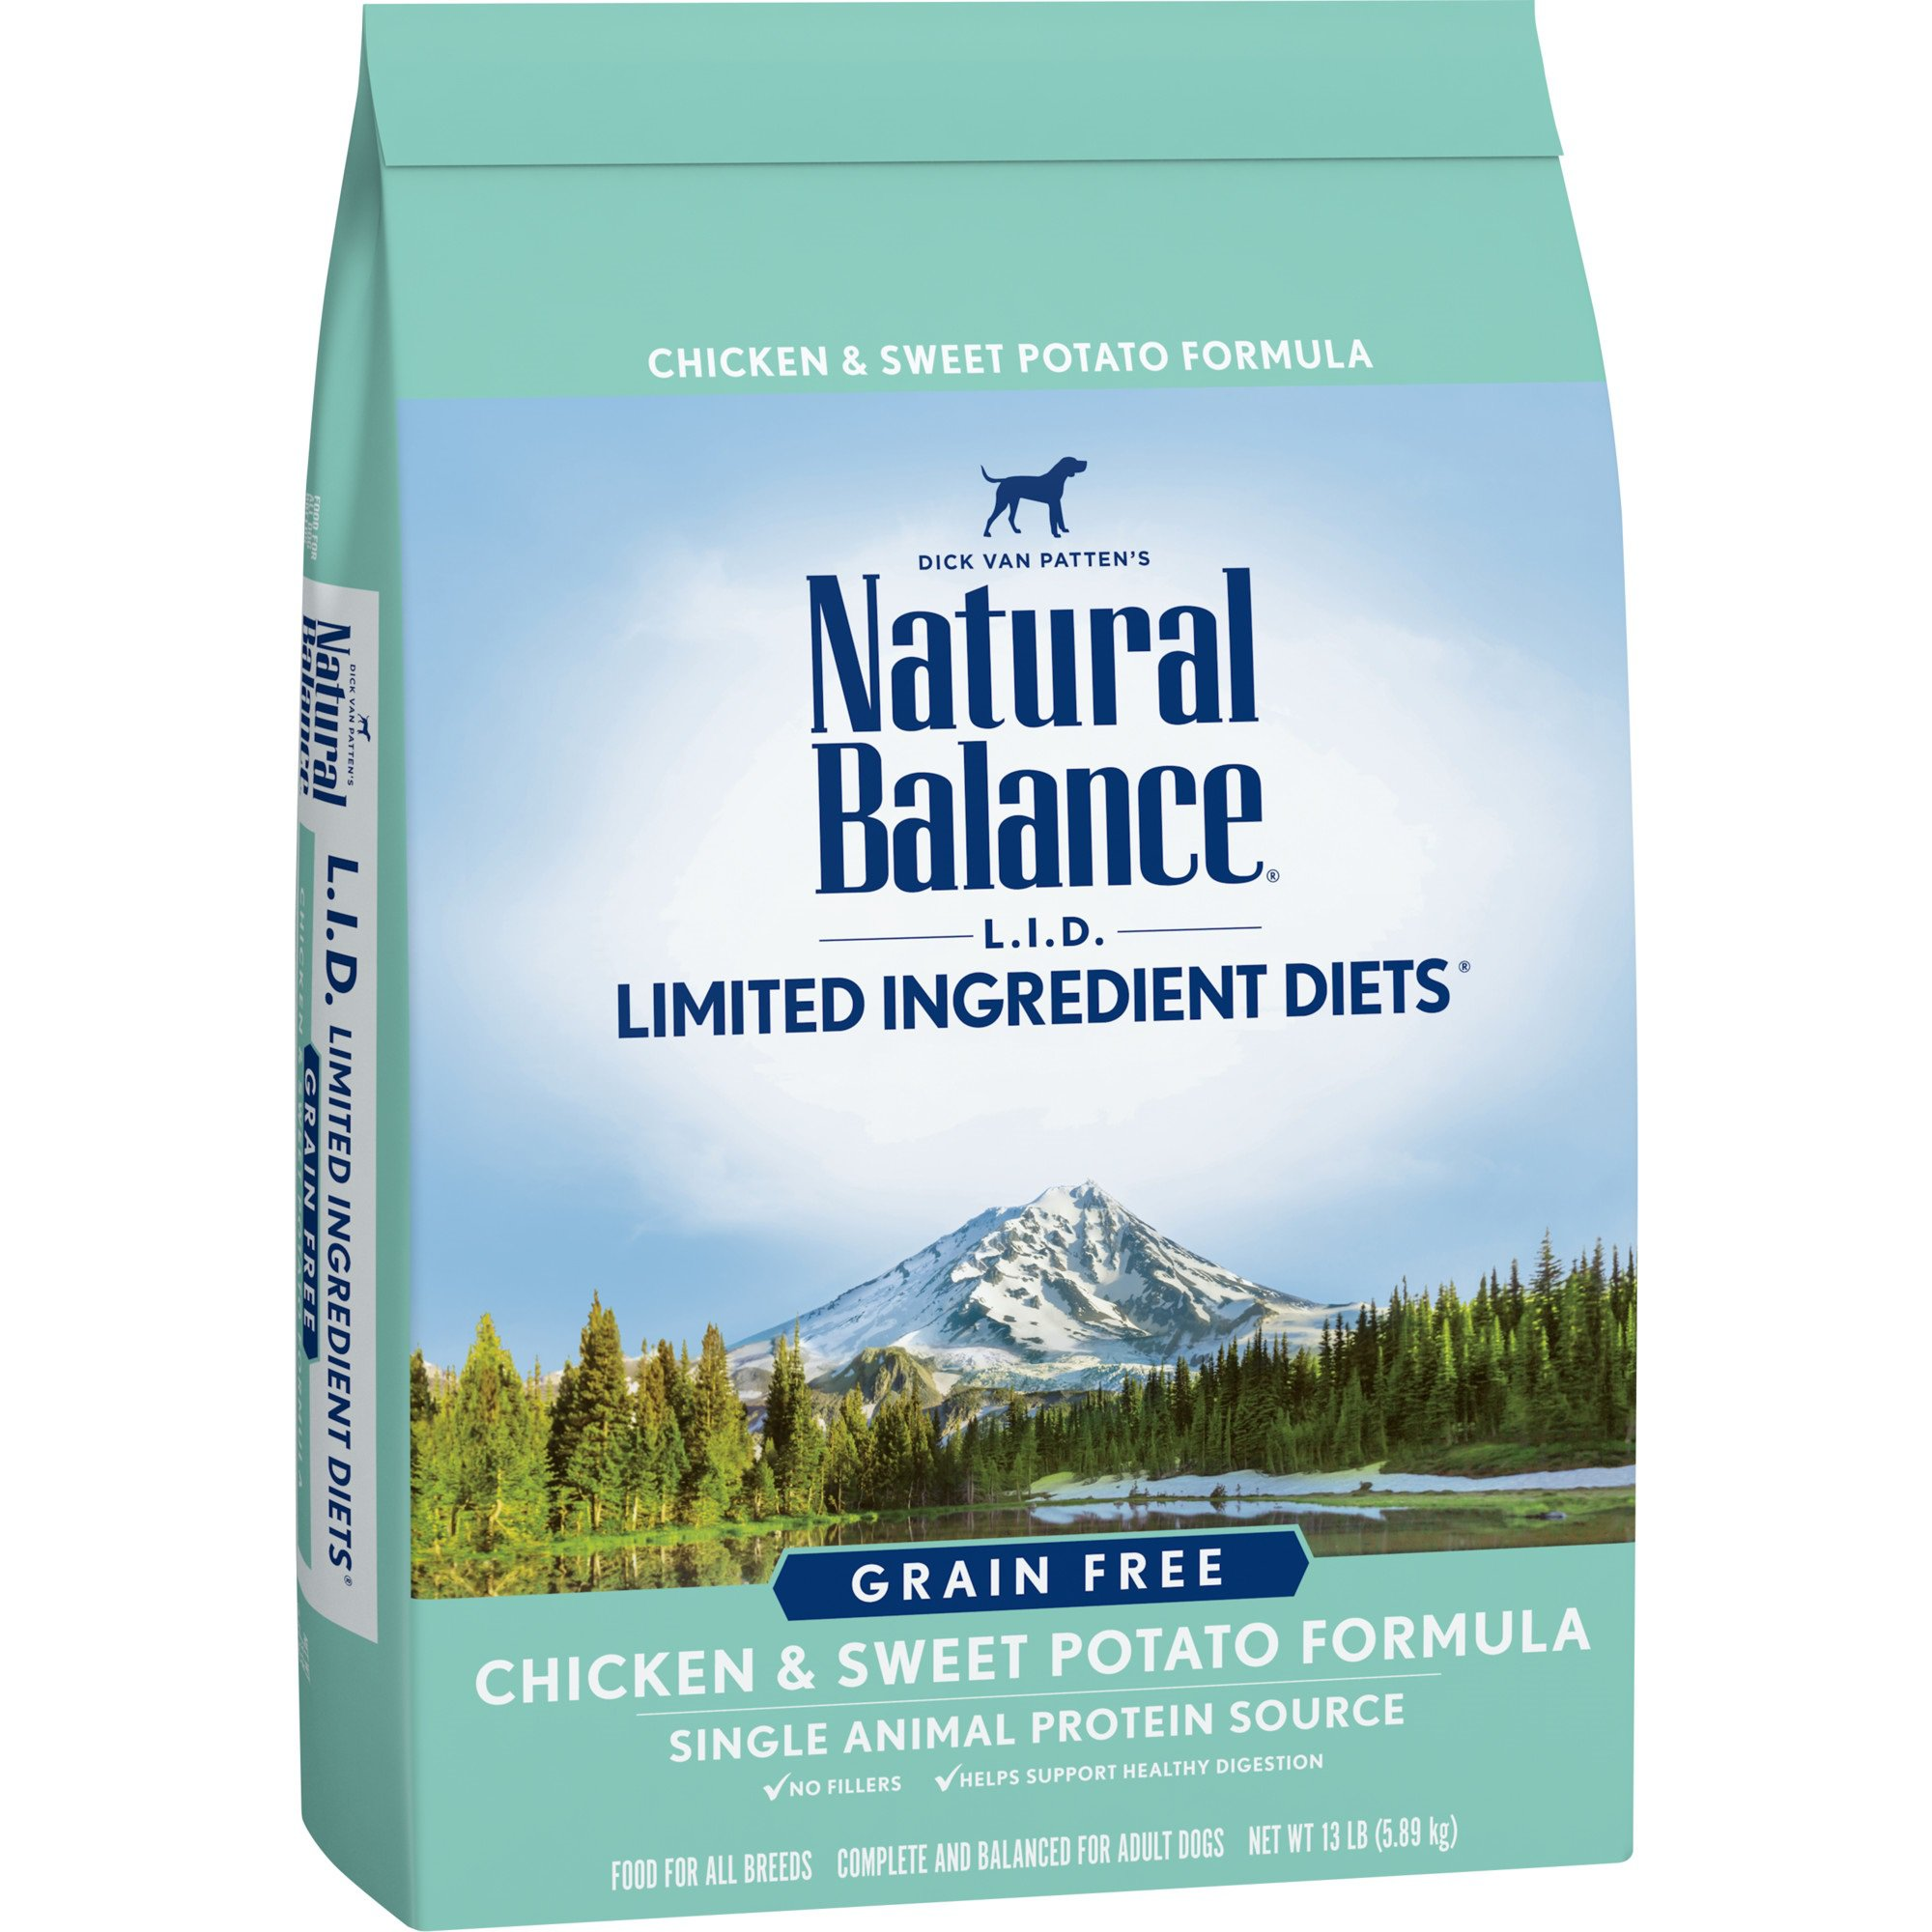 Natural Balance L.I.D. Limited Ingredient Diets Chicken & Sweet Potato Dog Food, 13 lbs.